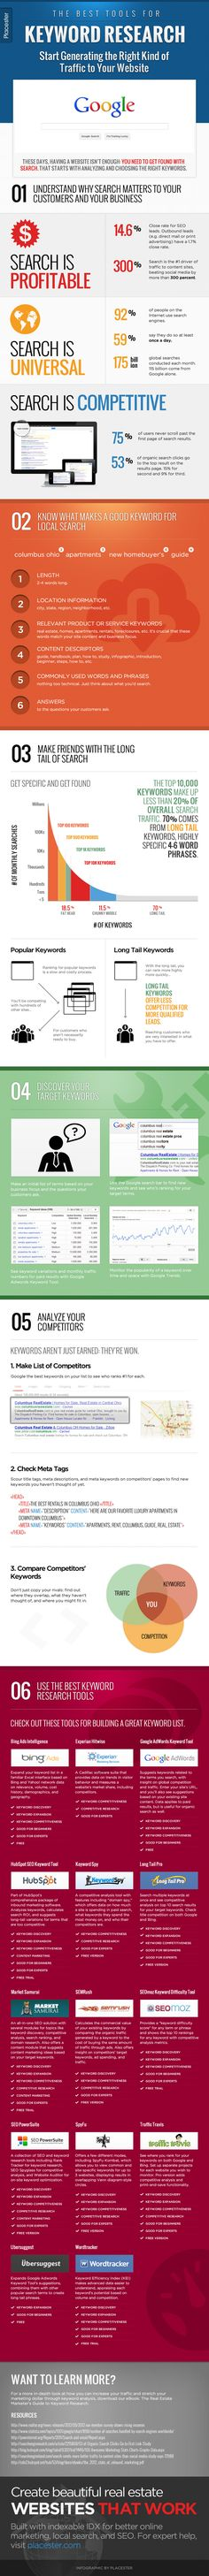 5 Incredible Keyword Research Analysis Tips #Infographics www.socialmediamamma.com